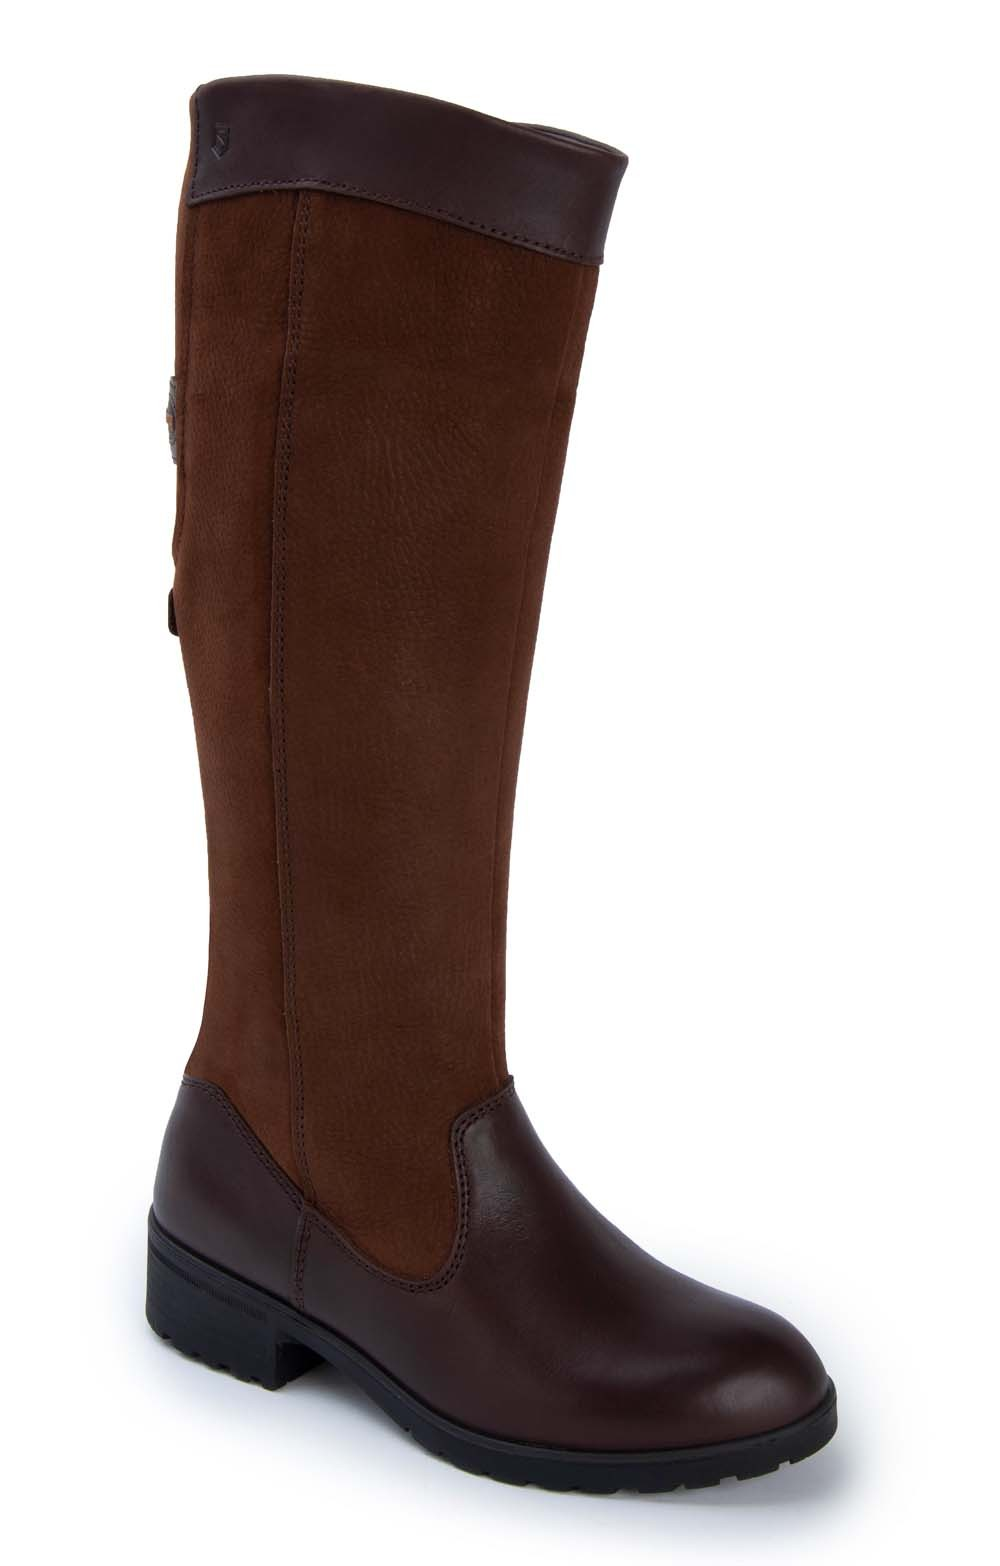 7838f535874c3 Dubarry Clare Boot | Ladies Wellingtons & Country Boots | House Of Bruar